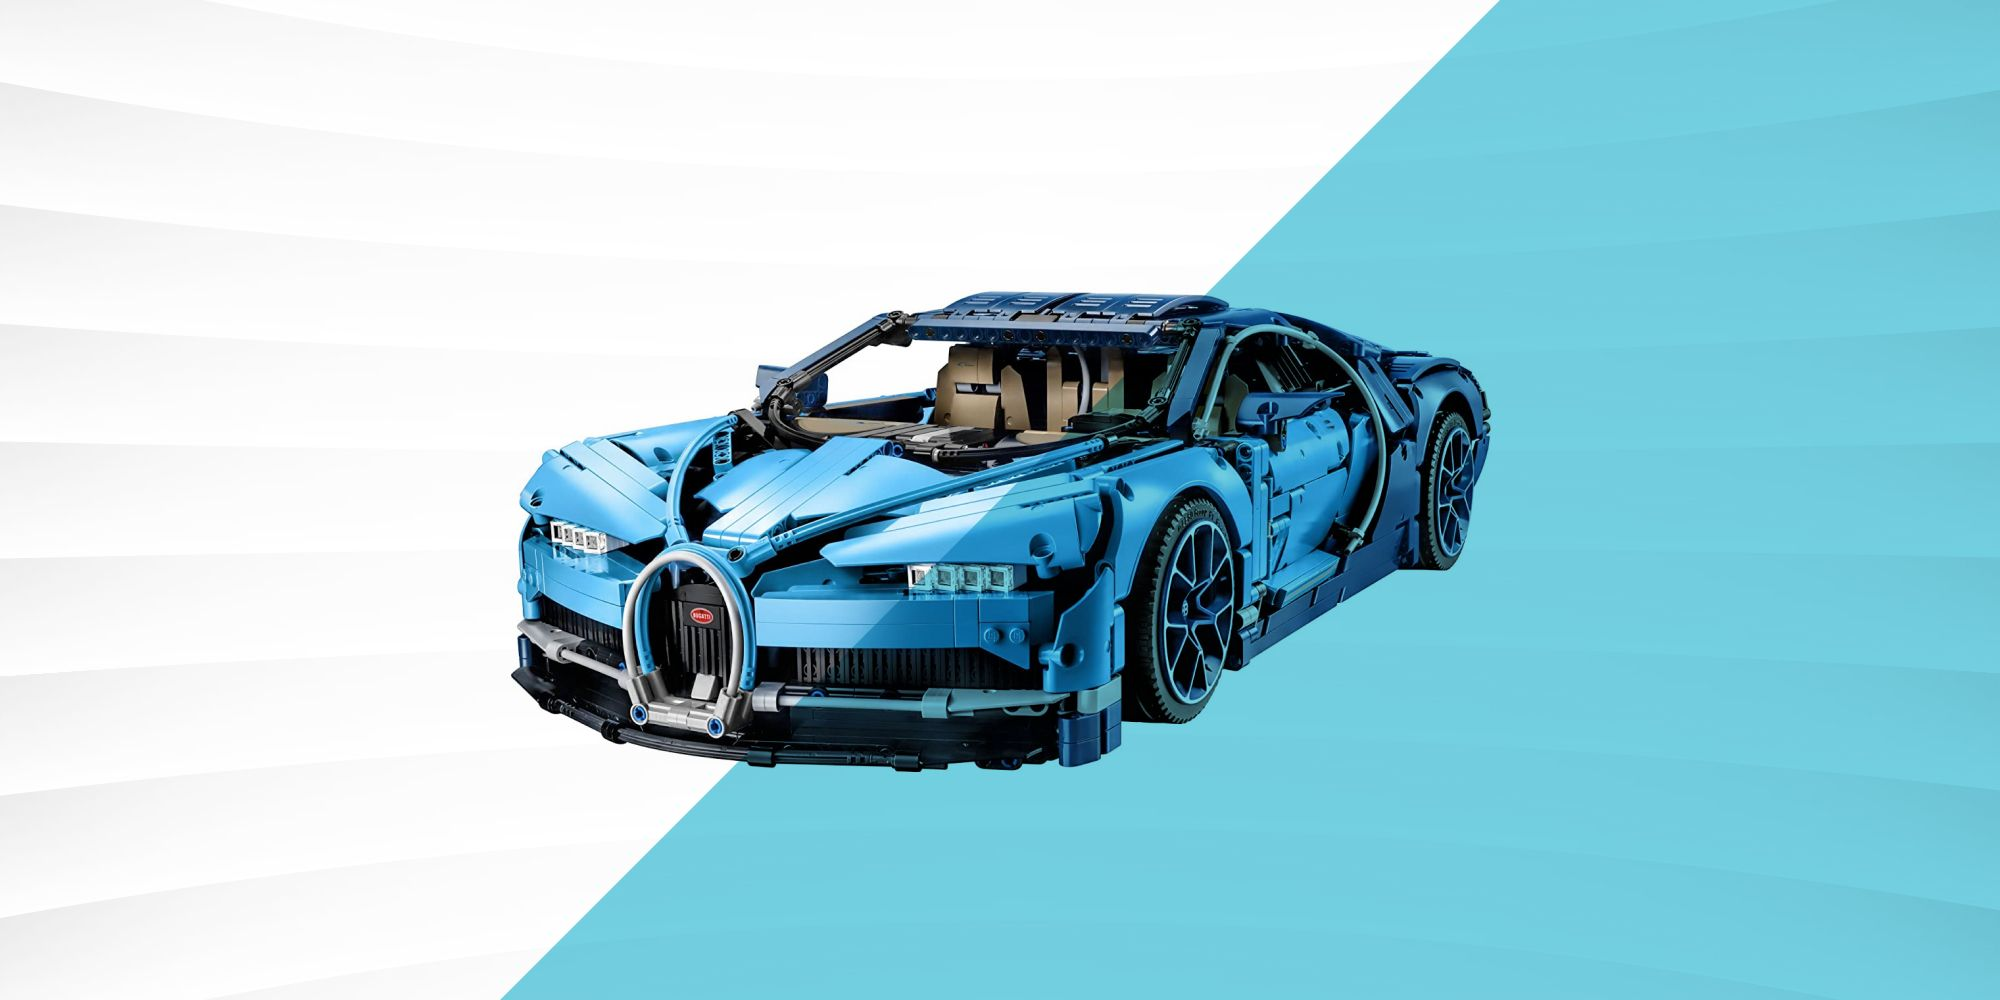 The 9 Best Model Car Kits for Automobile Enthusiasts